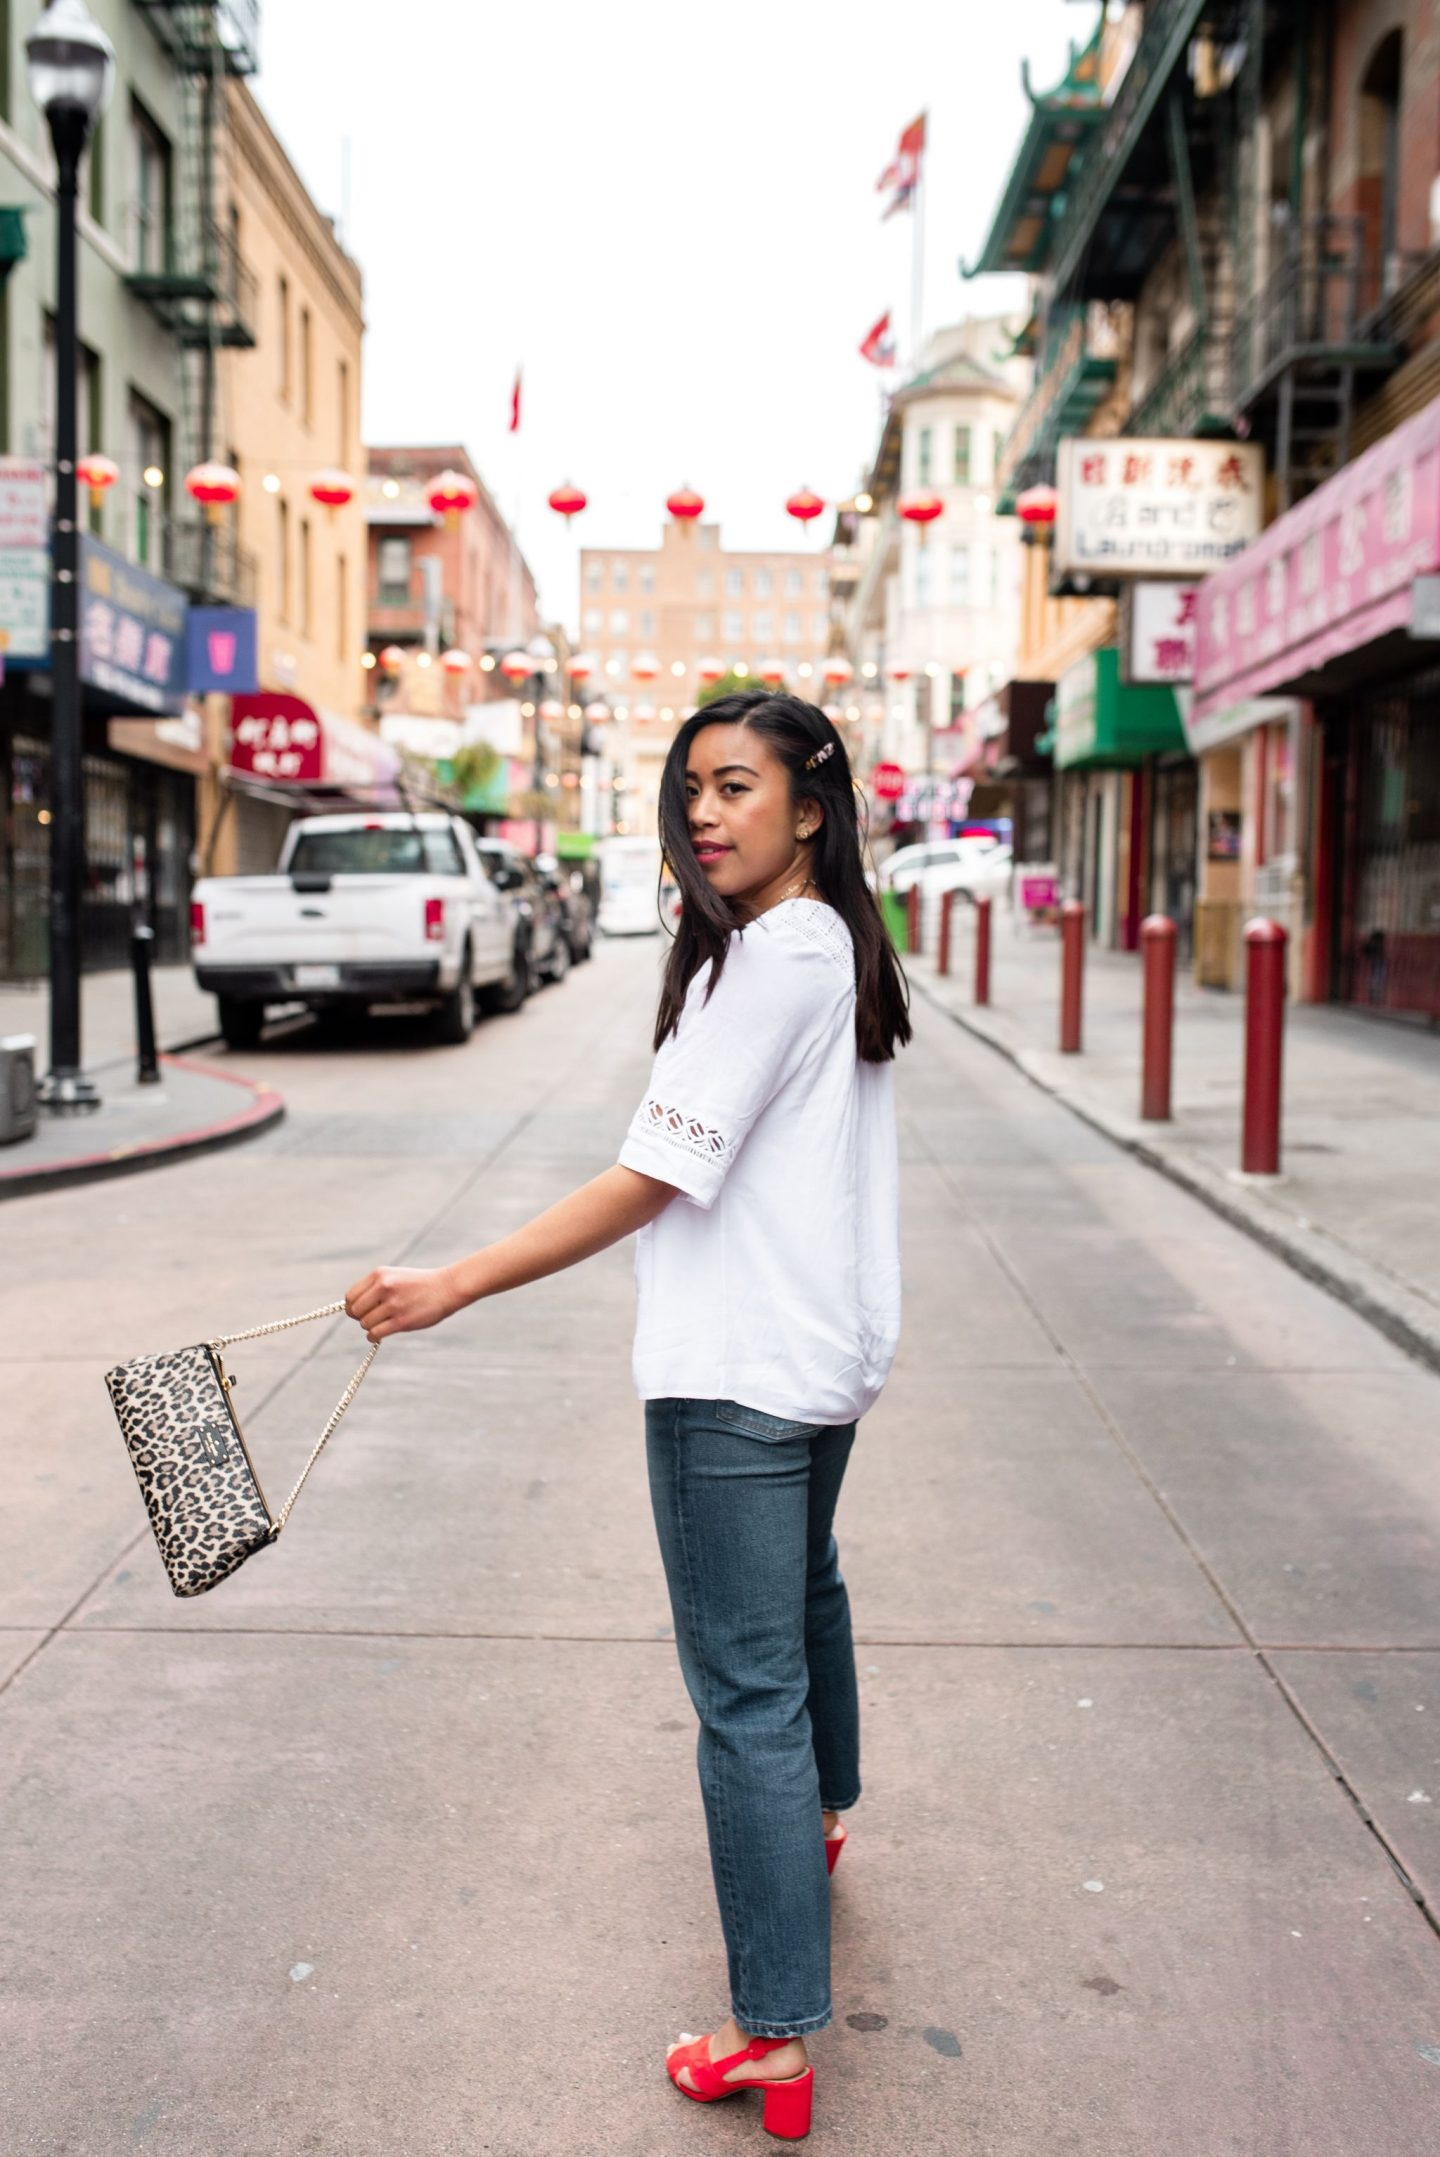 Chinatown San Francisco - Posing in the street - San Francisco's Most Instagrammable Places